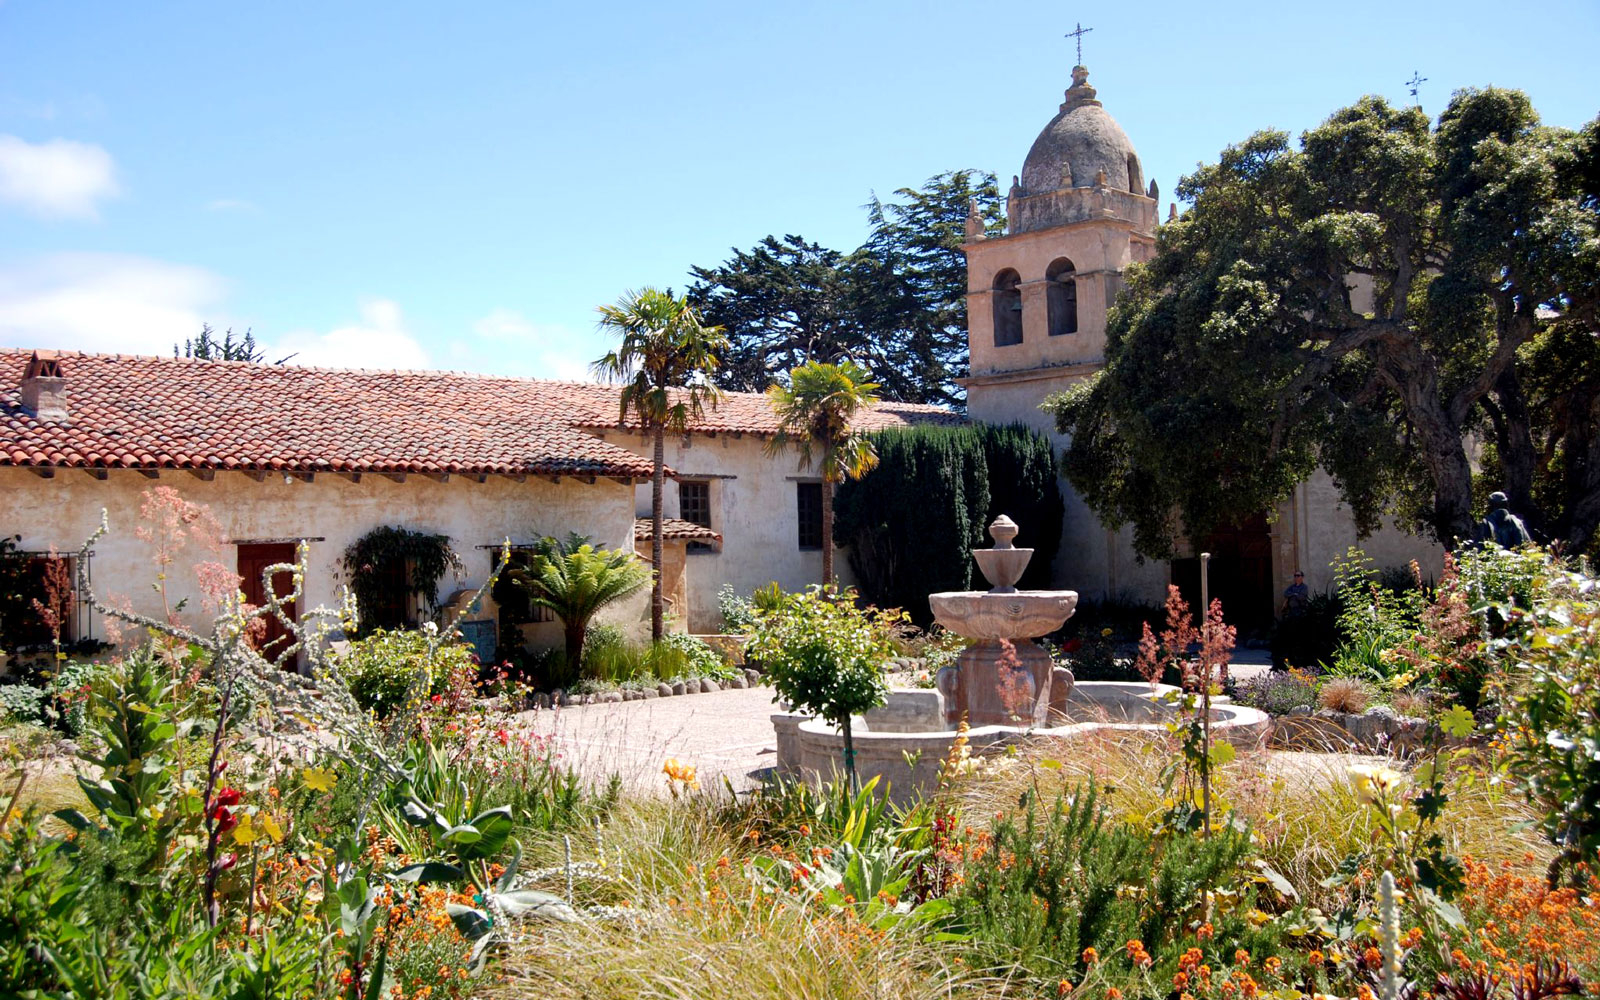 Carmel Mission landmark in Carmel, CA